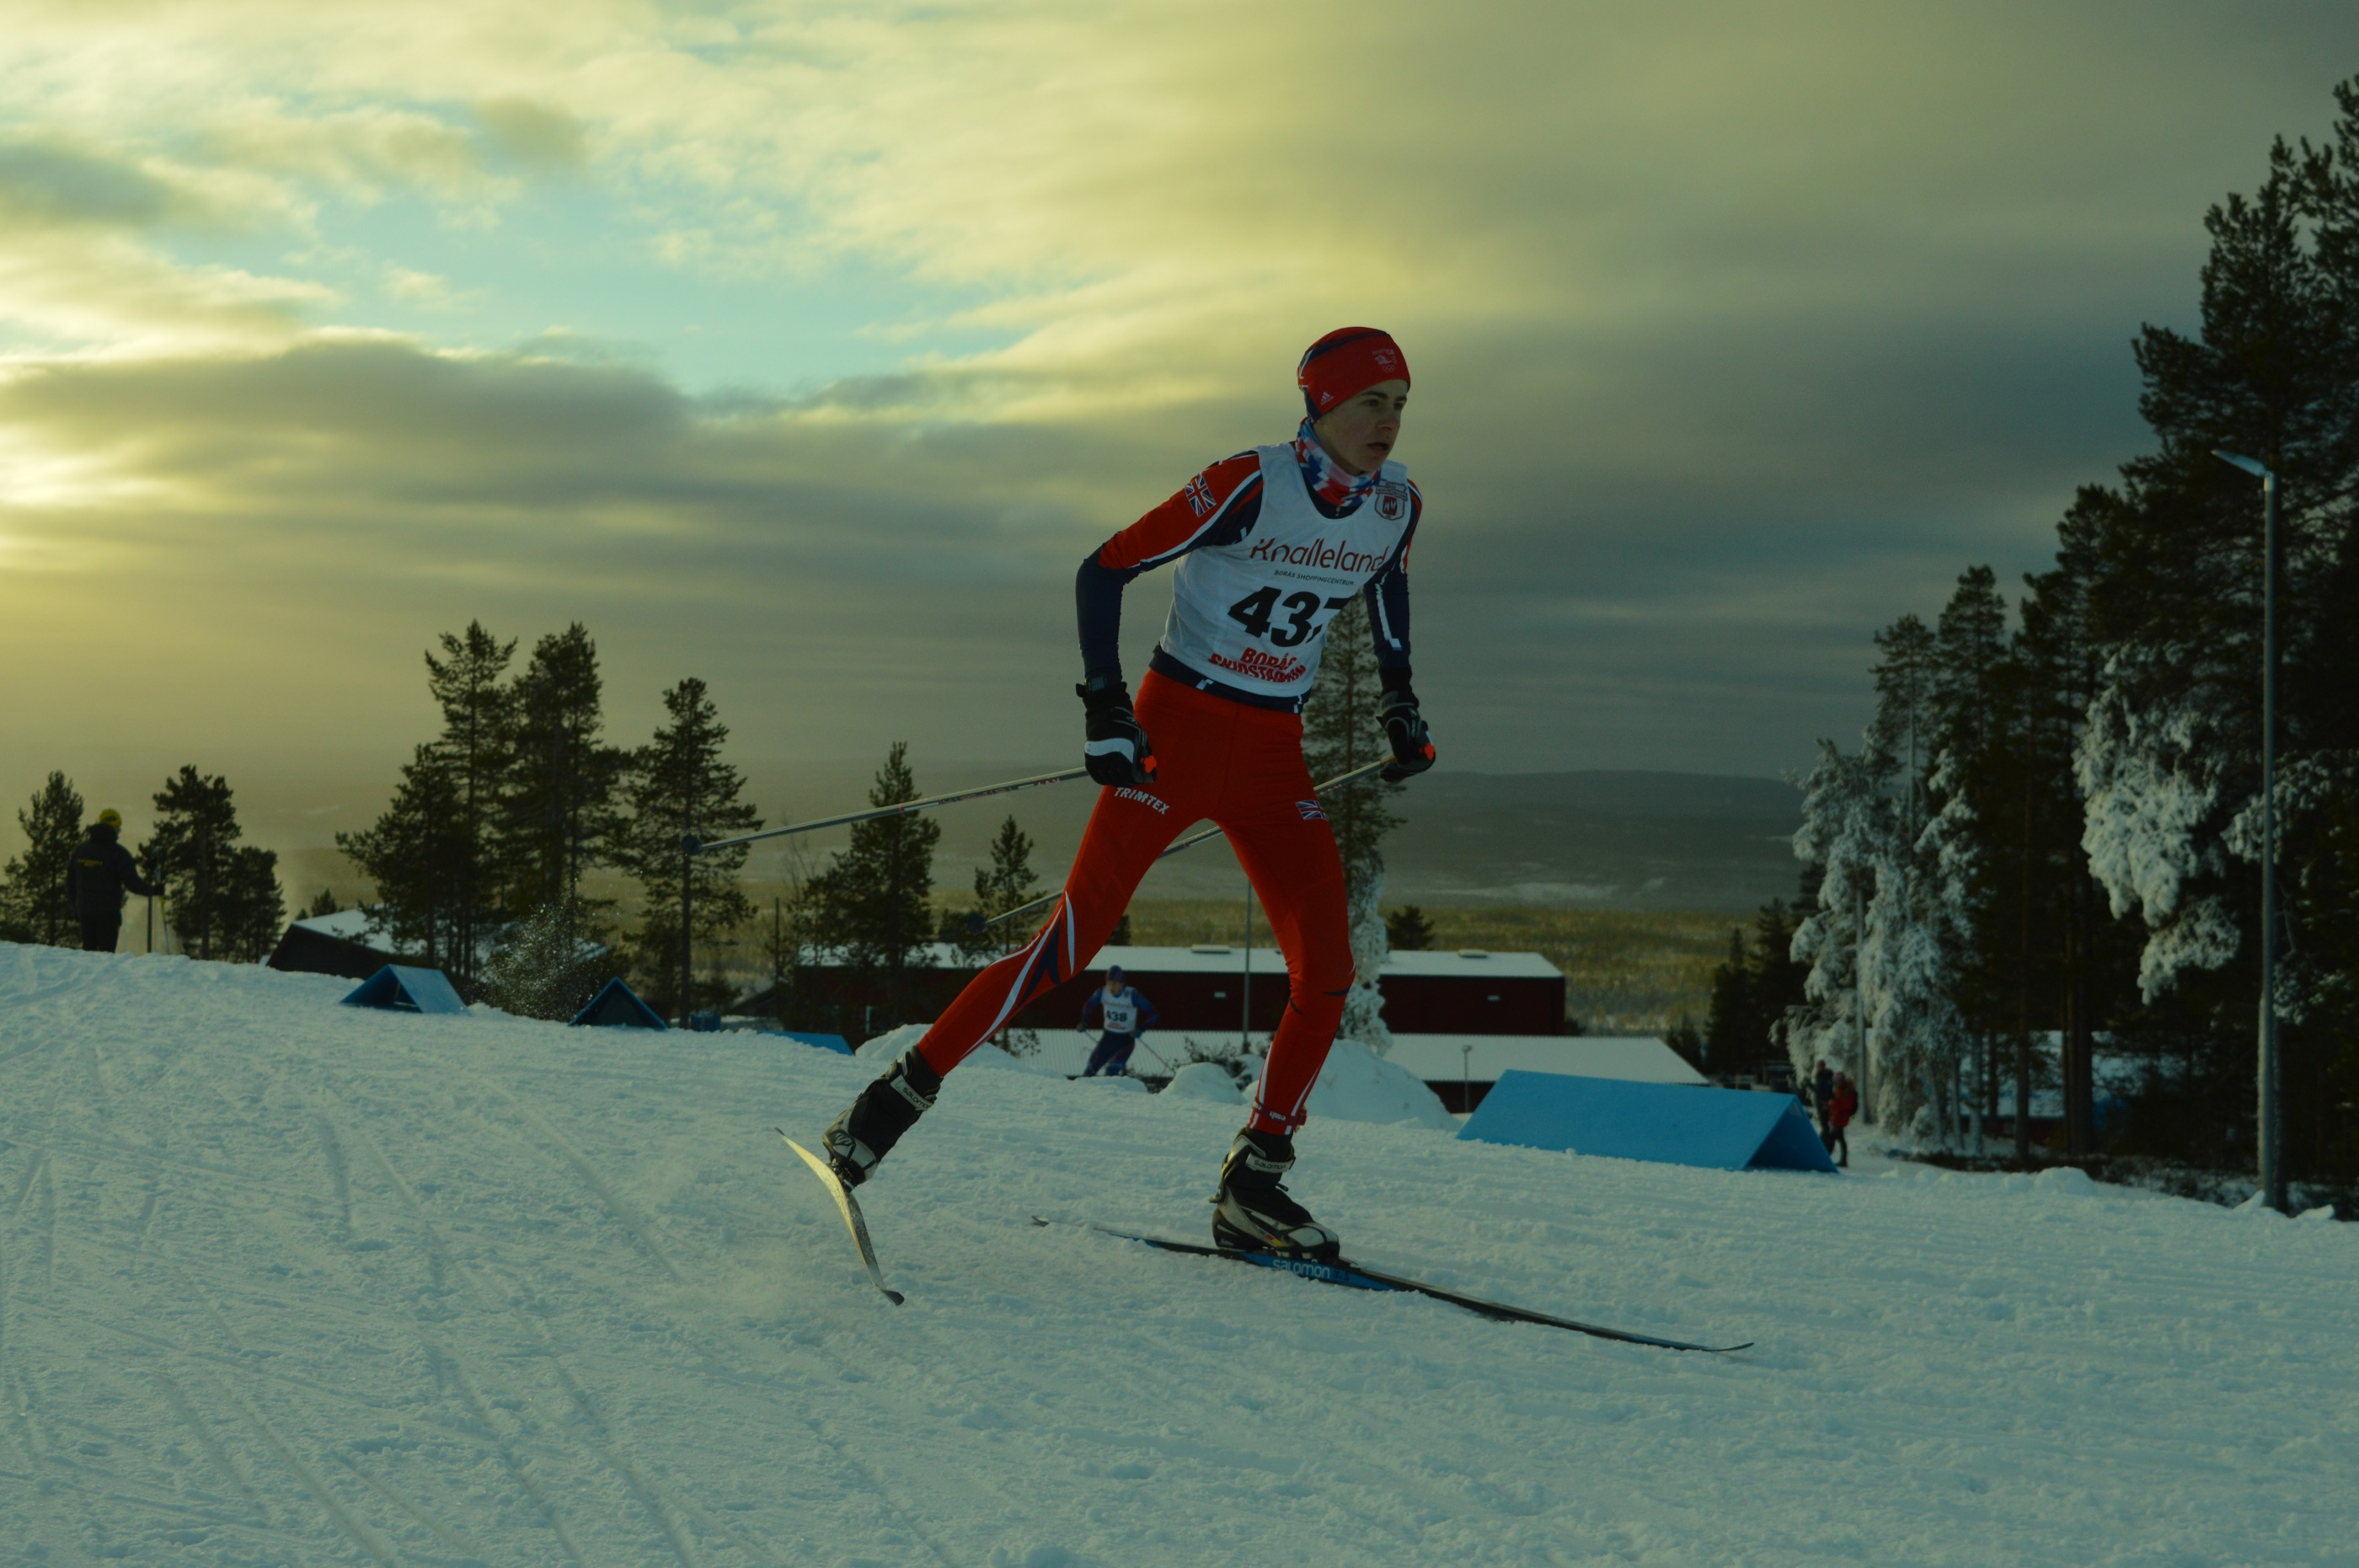 James Slimon is to return to Idre in Sweden to again compete in the winter snow competition